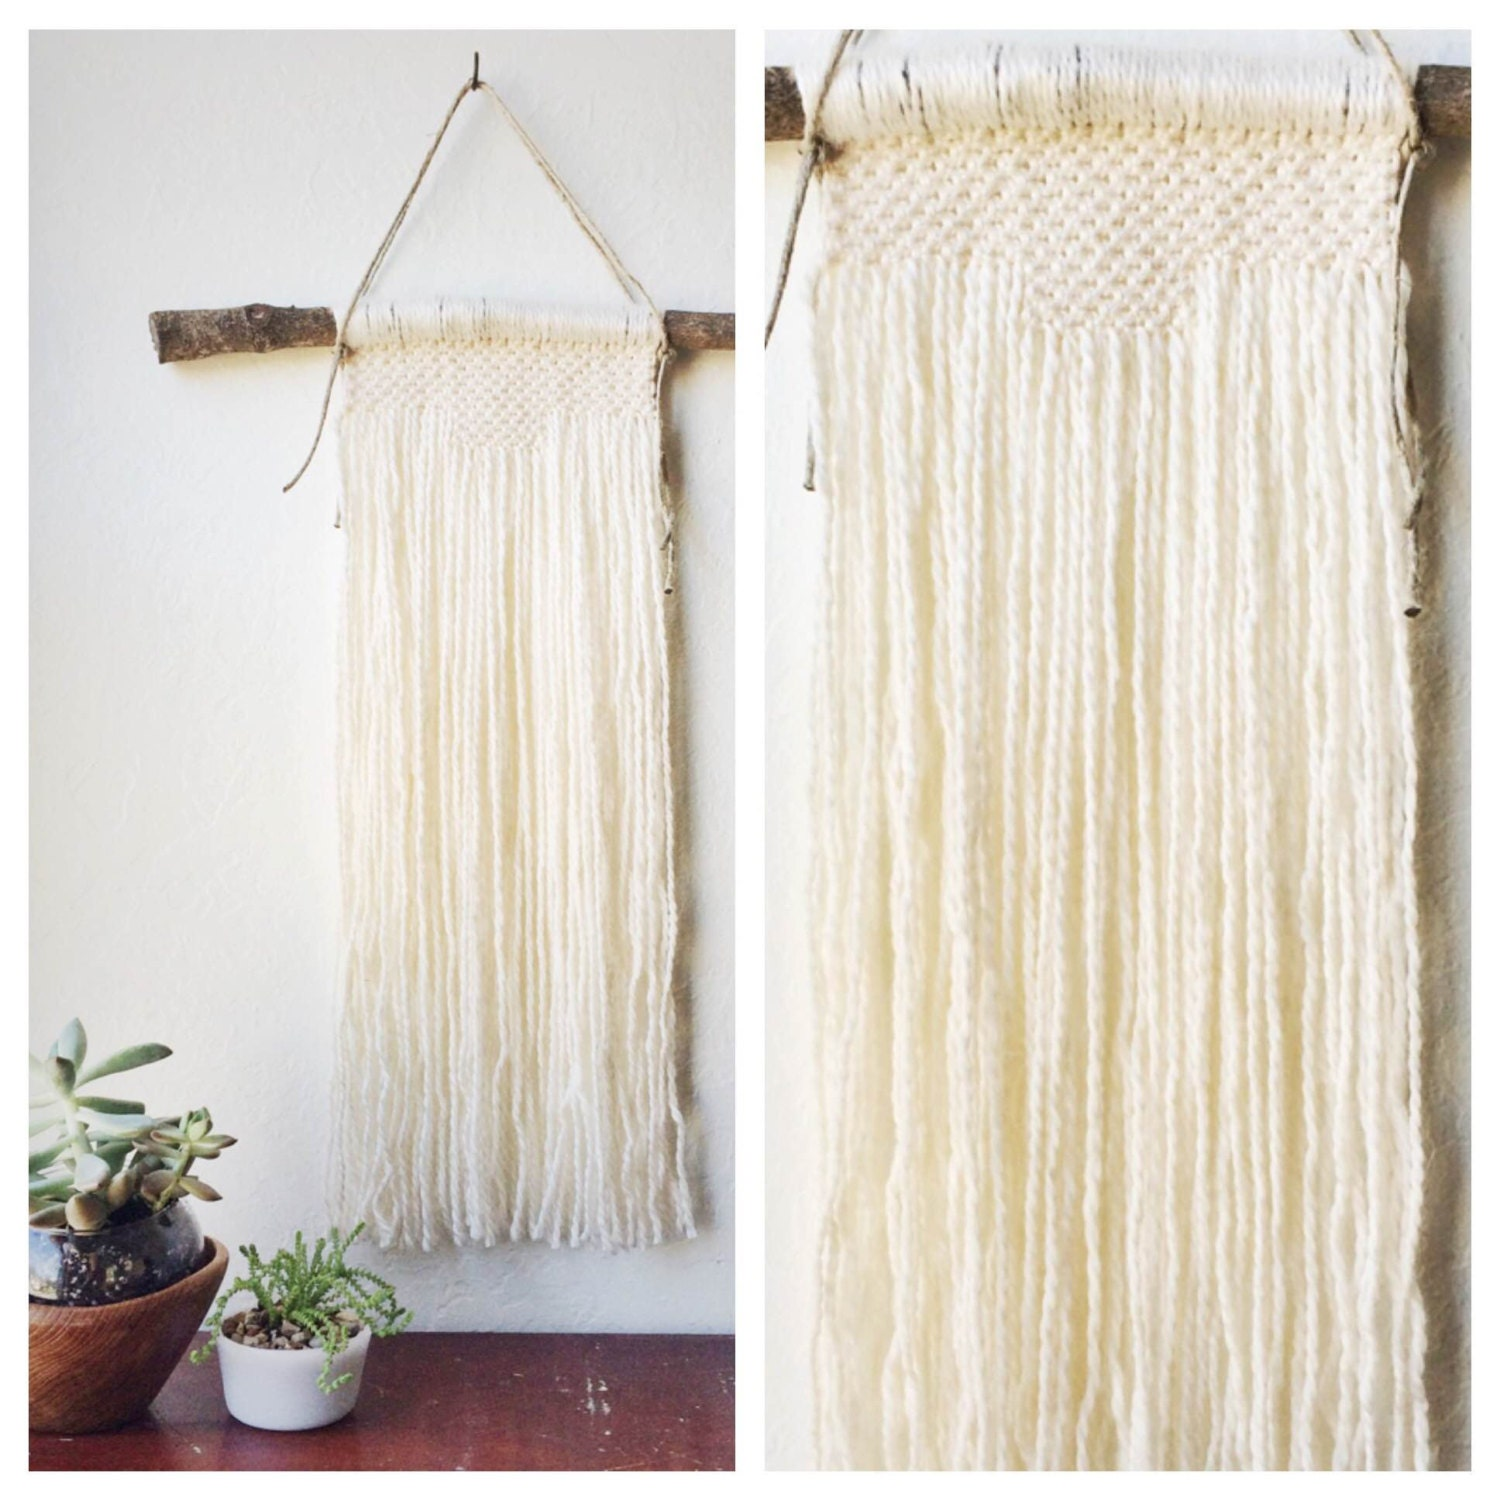 Southwest decor wall hangings : White macrame wall hanging southwest decor by